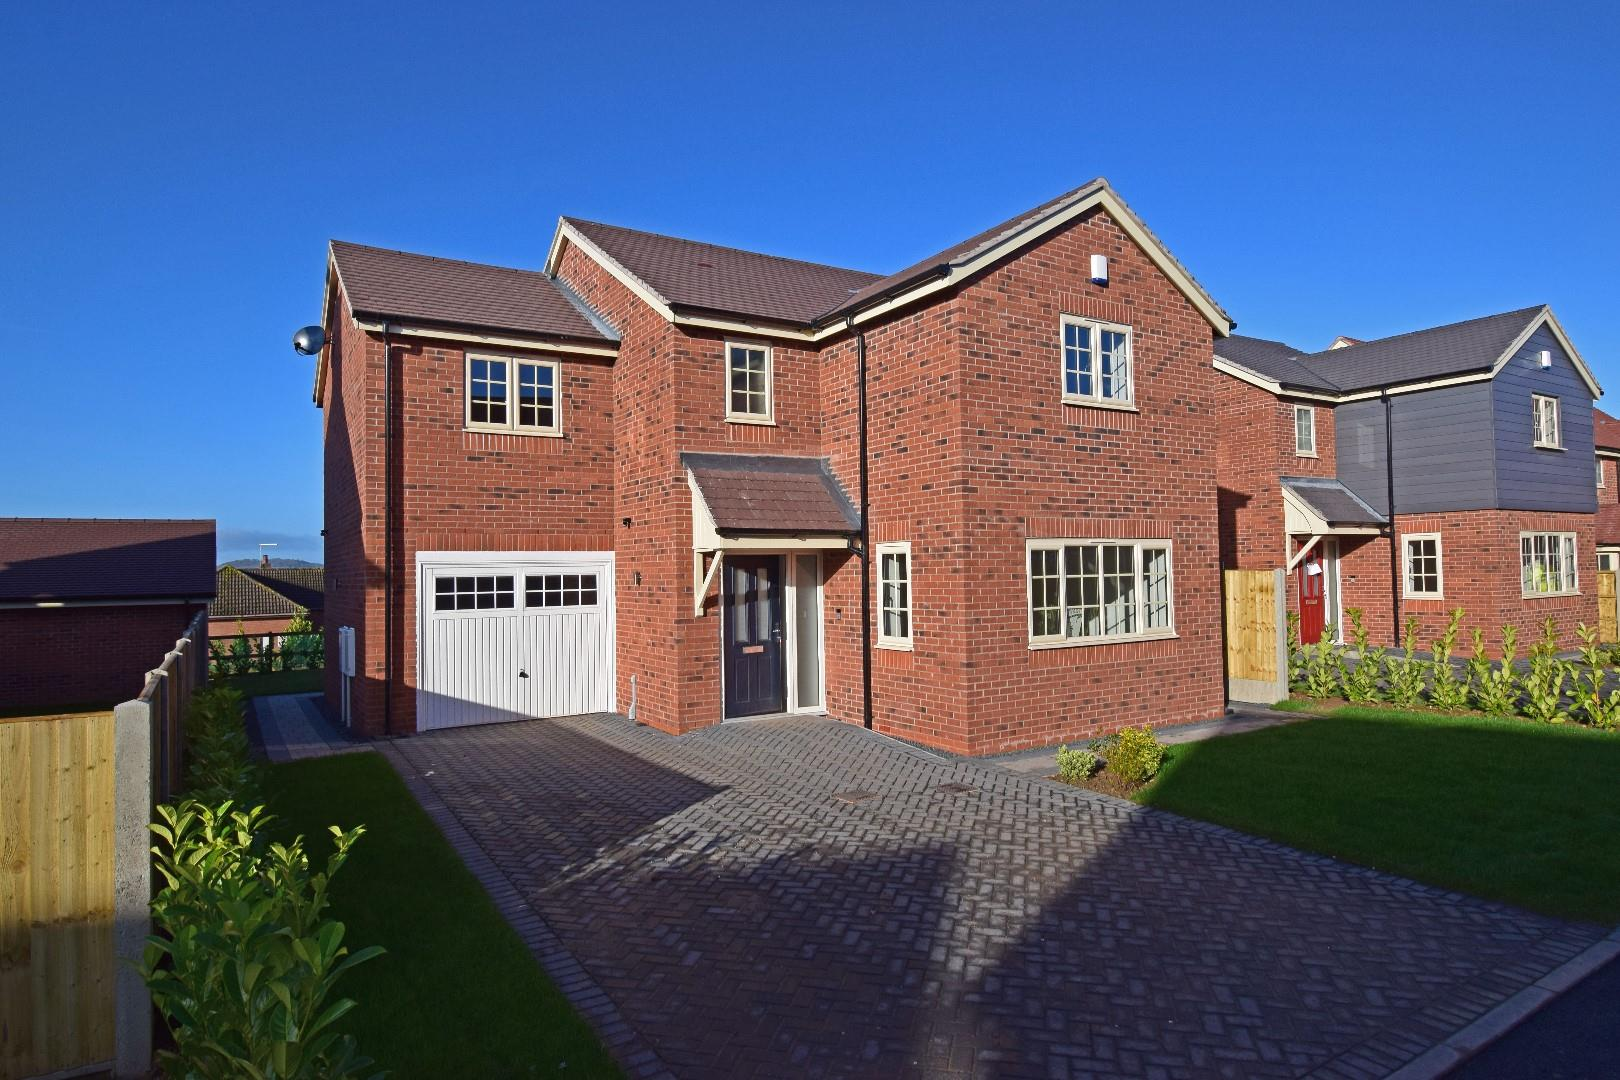 (Plot 5) 2 Peachley Court Close, Peachley Lane, Lower Broadheath, Worcestershire, WR2 6SA